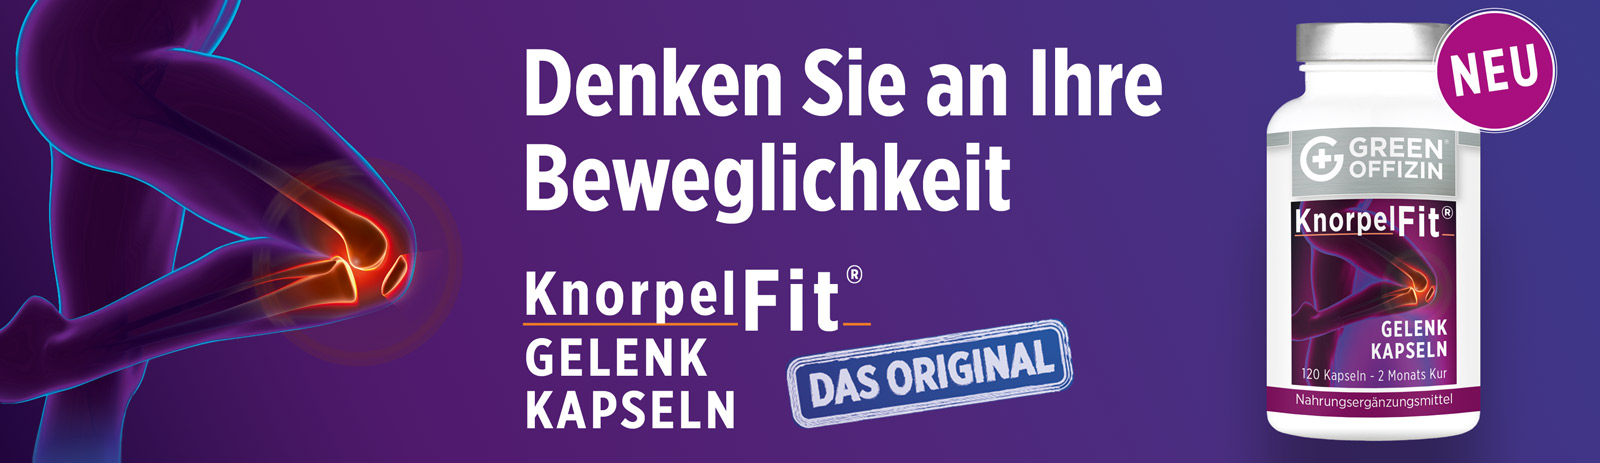 Green Offizin KnorpelFit